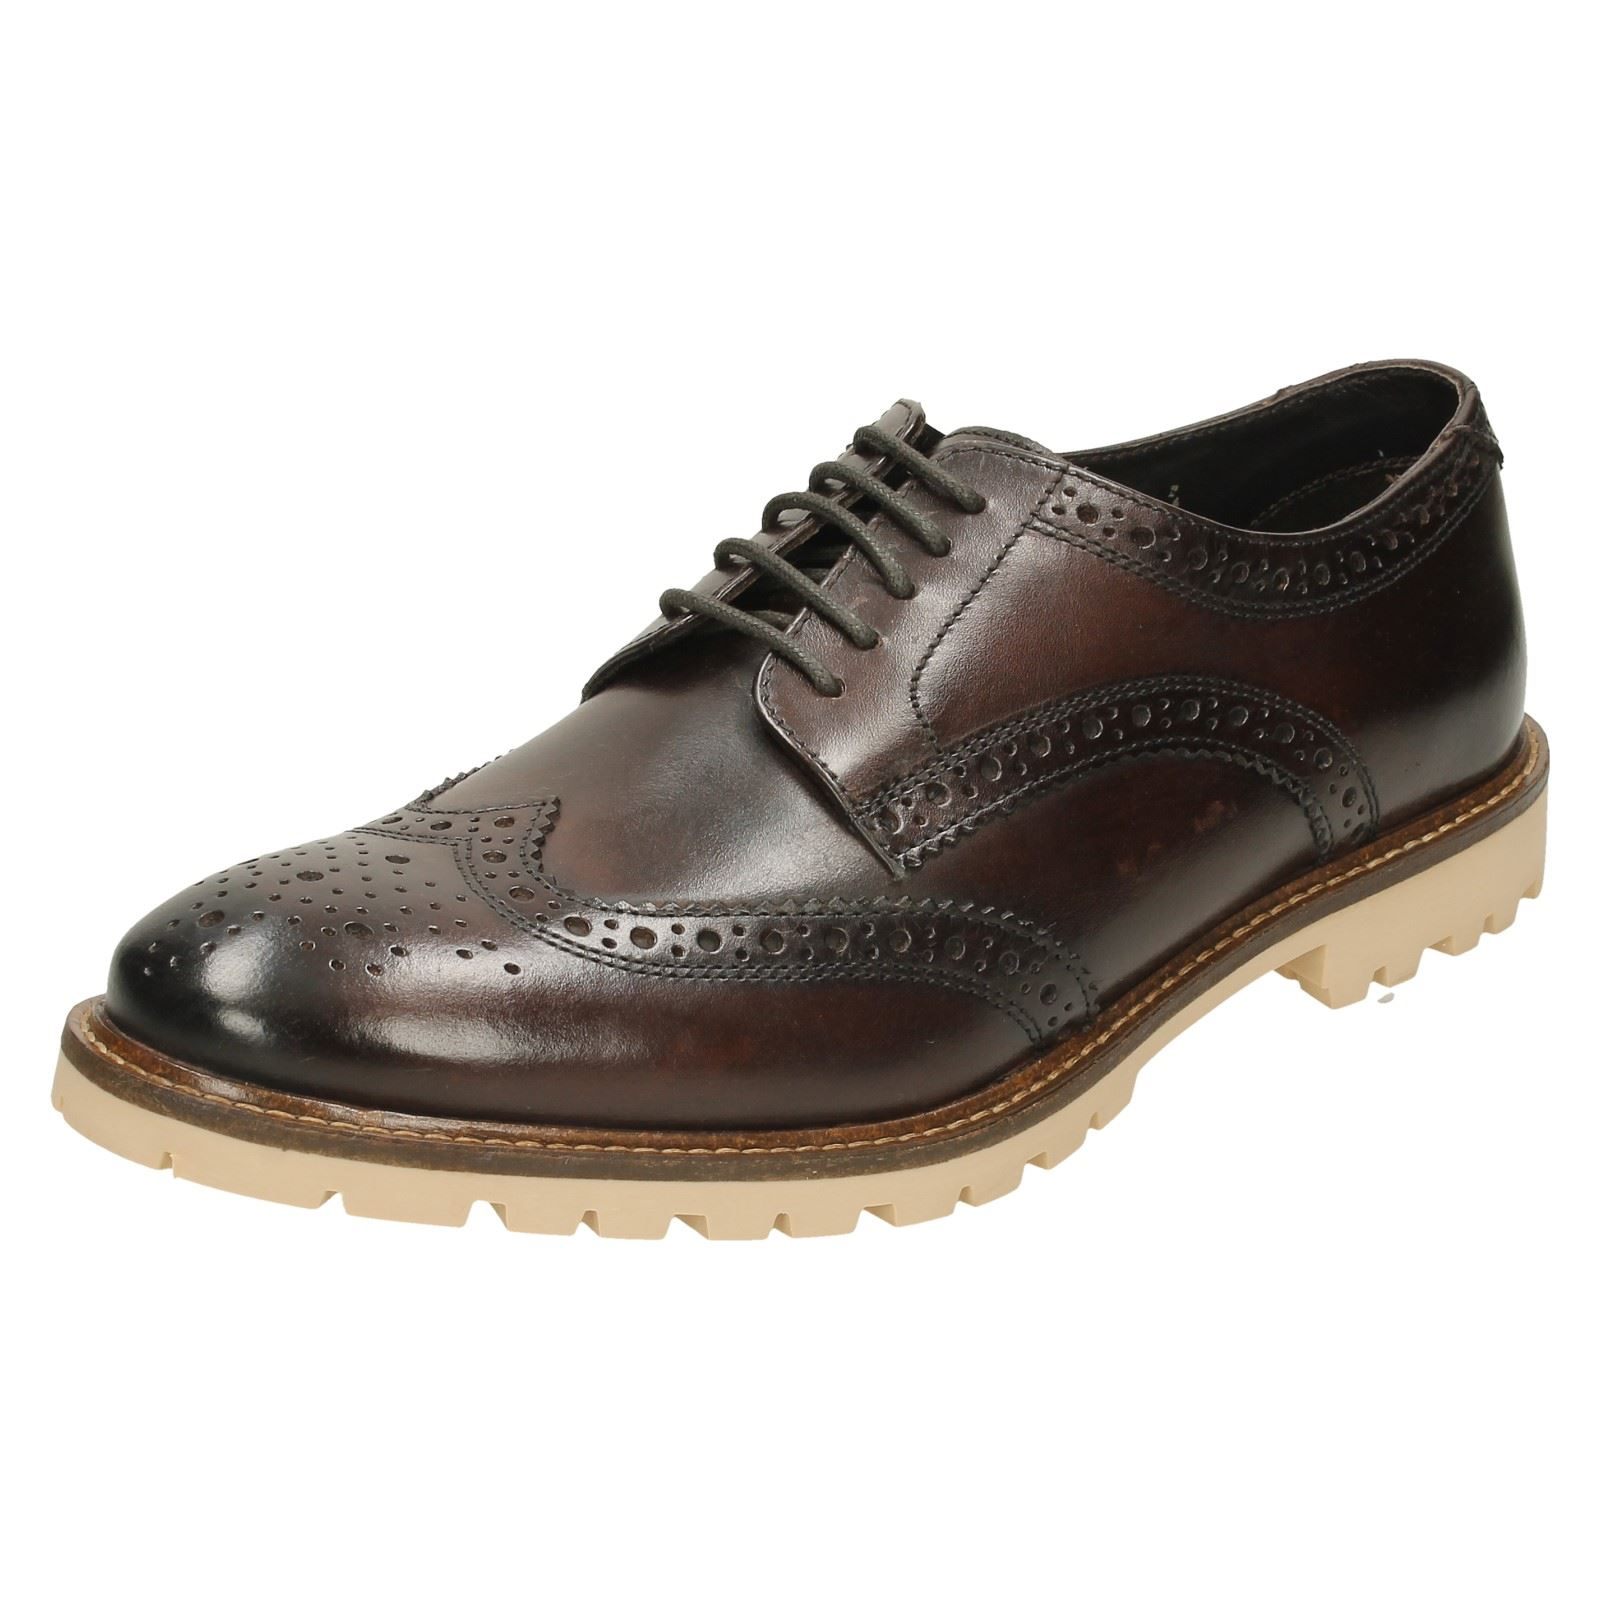 mens-base-london-formal-shoes Le - style-hollow-mto vQ3b0v